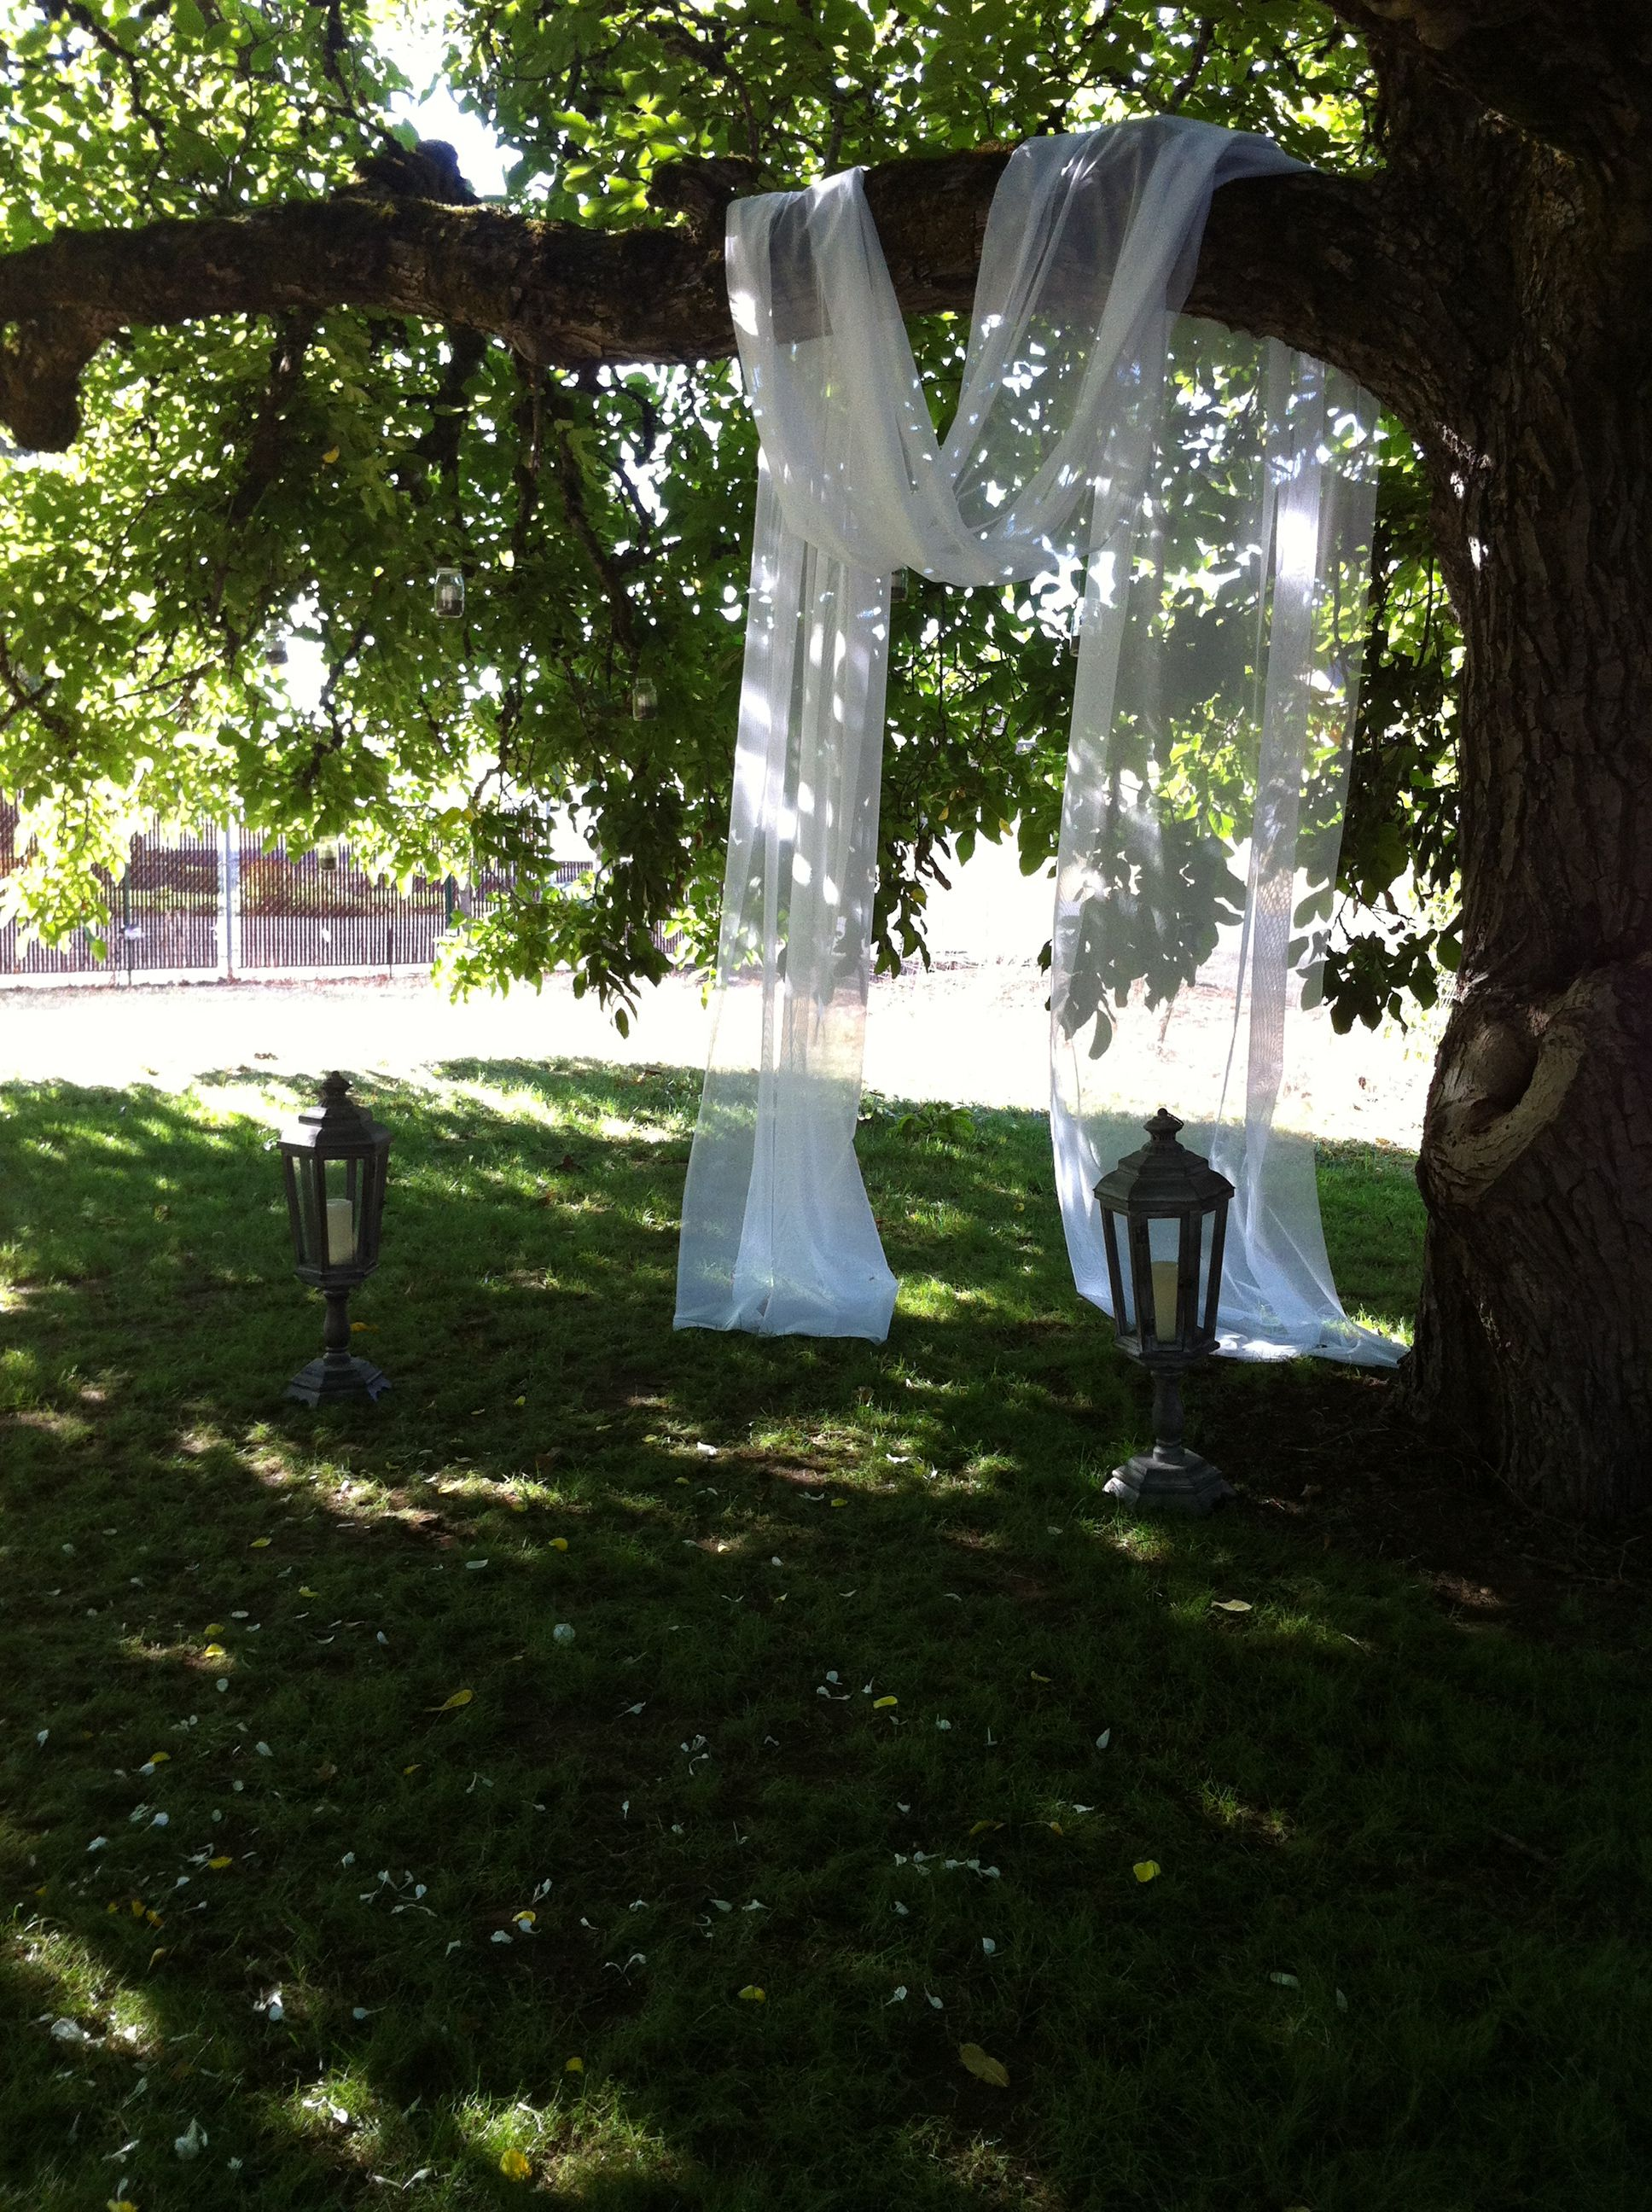 drape fabric over tree branches for an alter | DIY Wedding Decor in ...